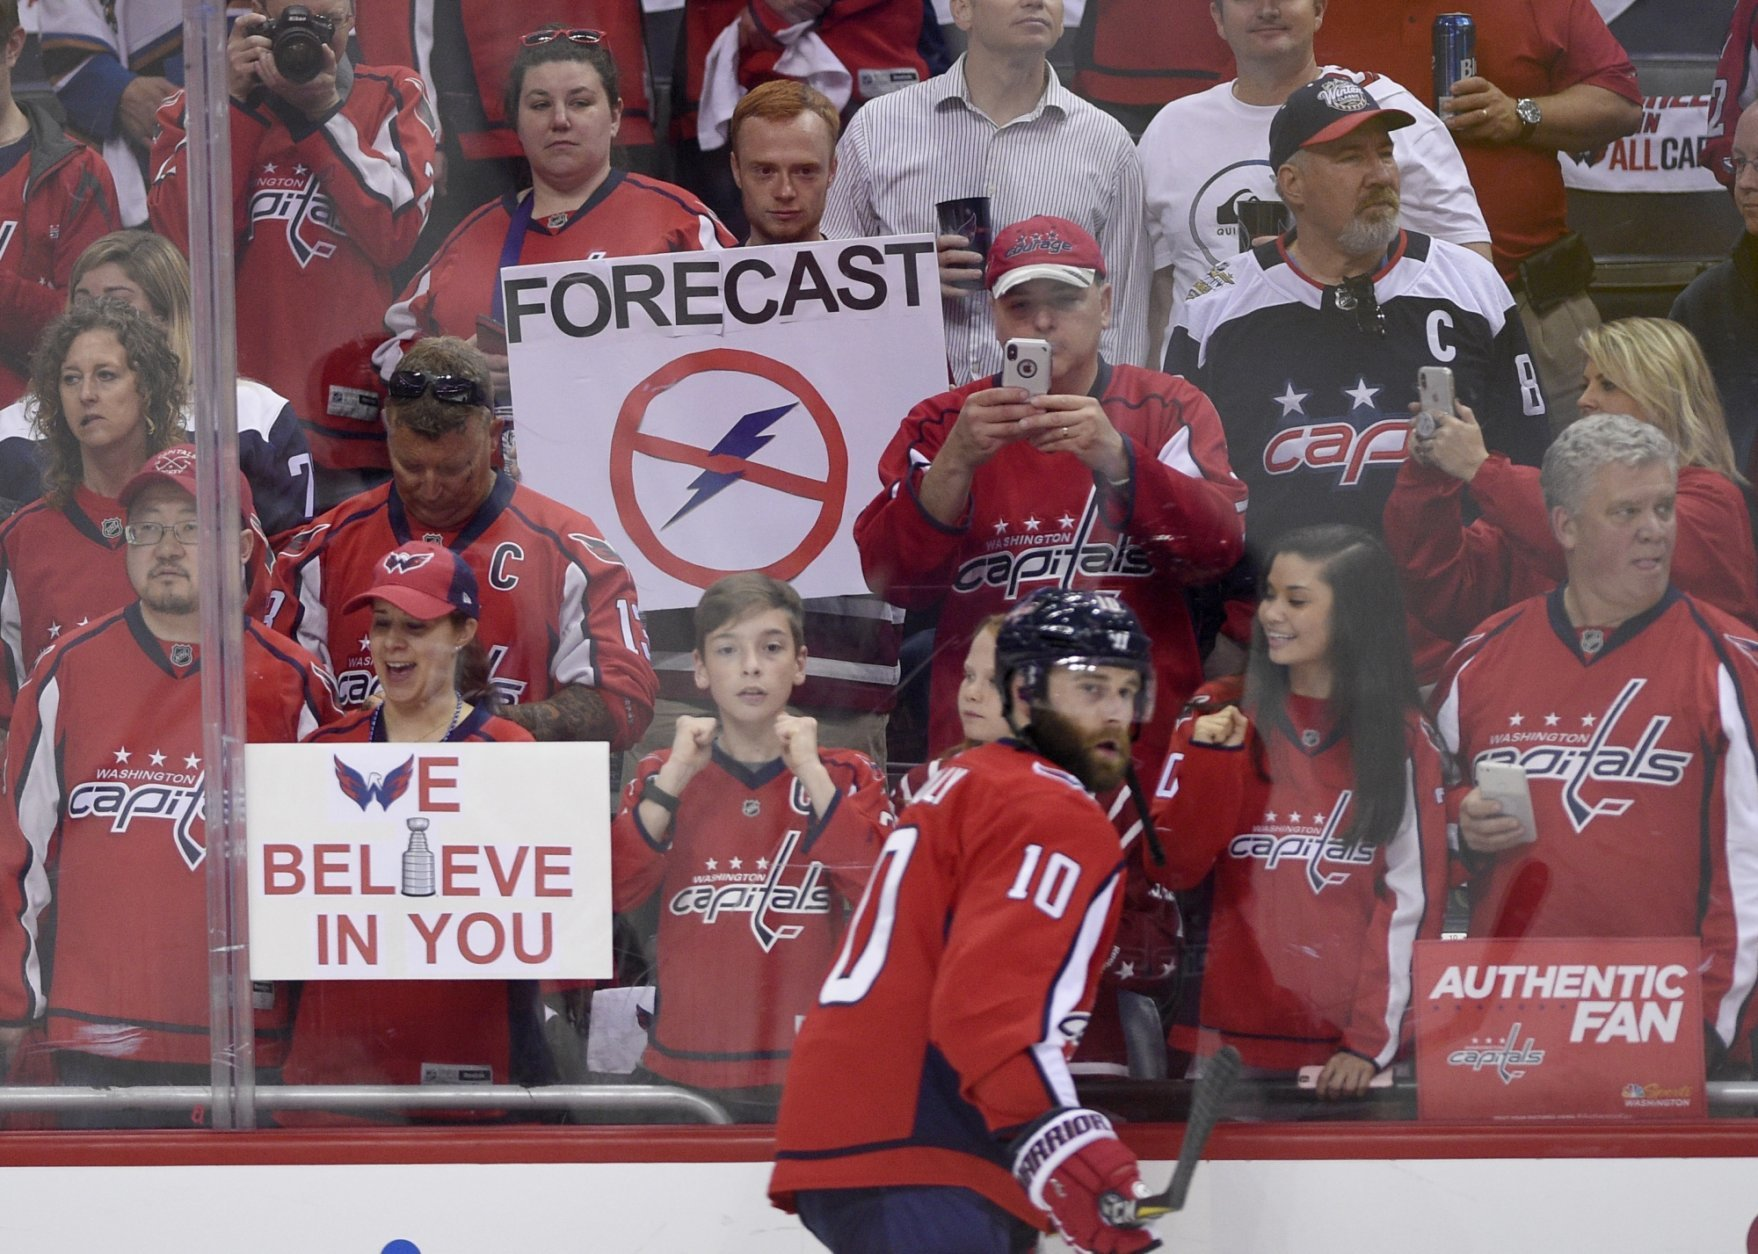 Washington Capitals fans hold up signs during warm ups before Game 3 of the NHL Eastern Conference finals hockey playoff series between the Washington Capitals and the Tampa Bay Lightning, Tuesday, May 15, 2018 in Washington. Also seen is Washington Capitals right wing Brett Connolly (10). (AP Photo/Nick Wass)